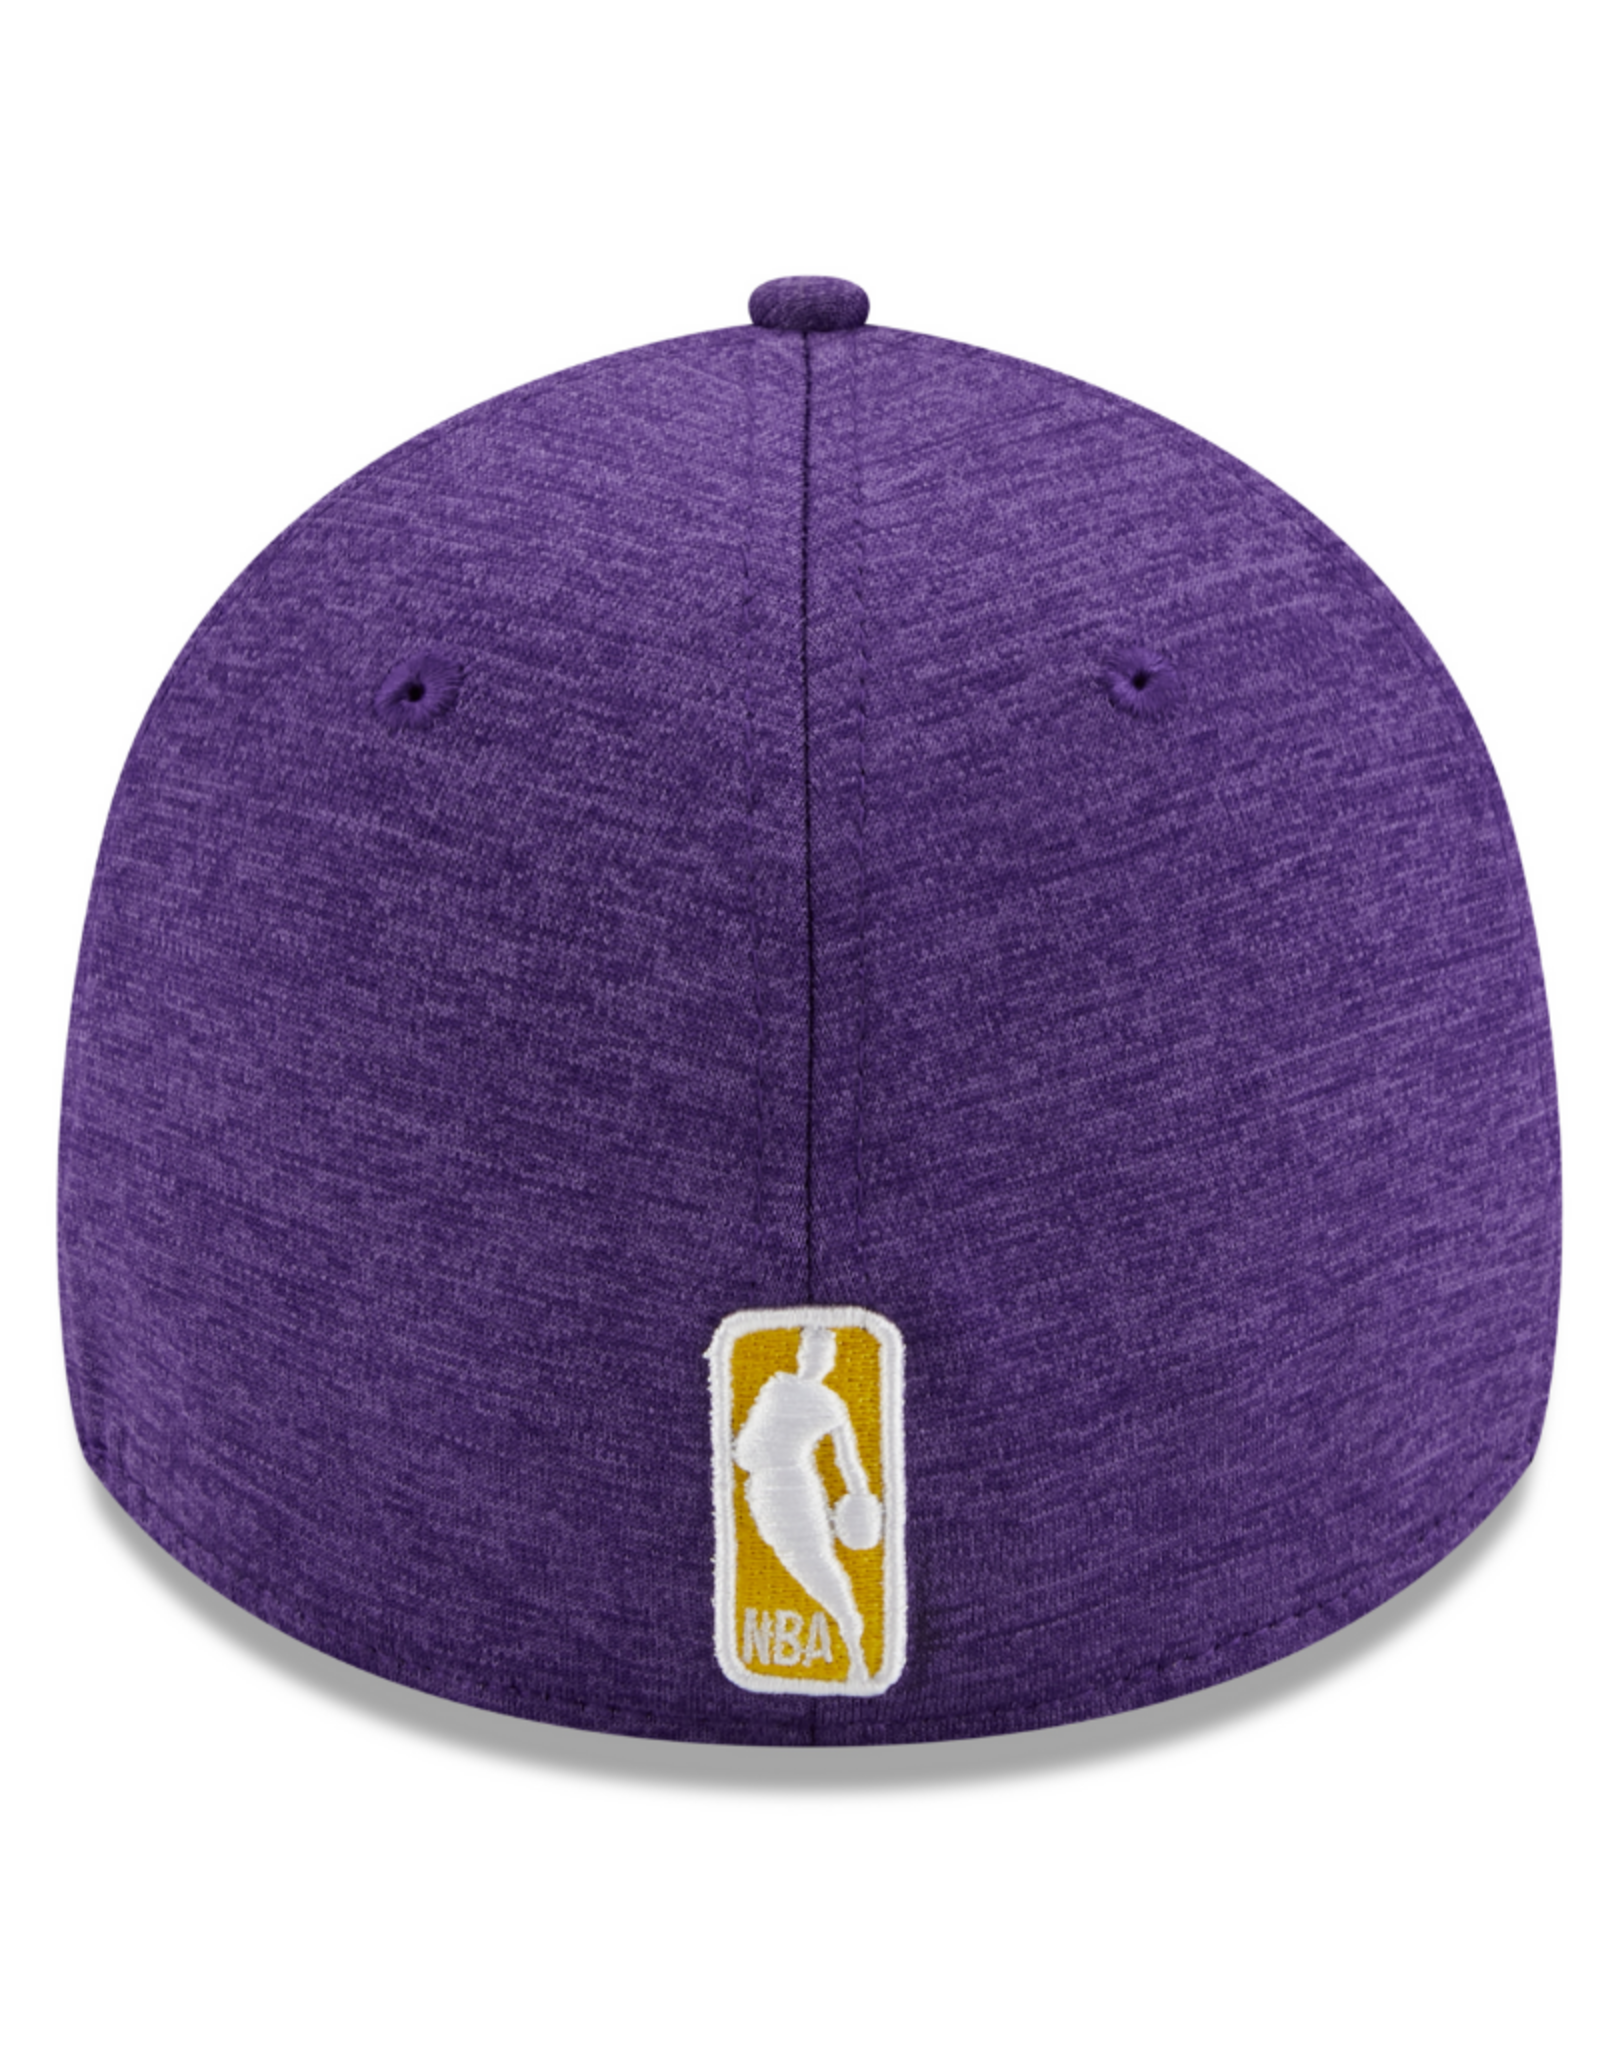 New Era Adult 39THIRTY Shadow B3 Hat Los Angeles Lakers Purple